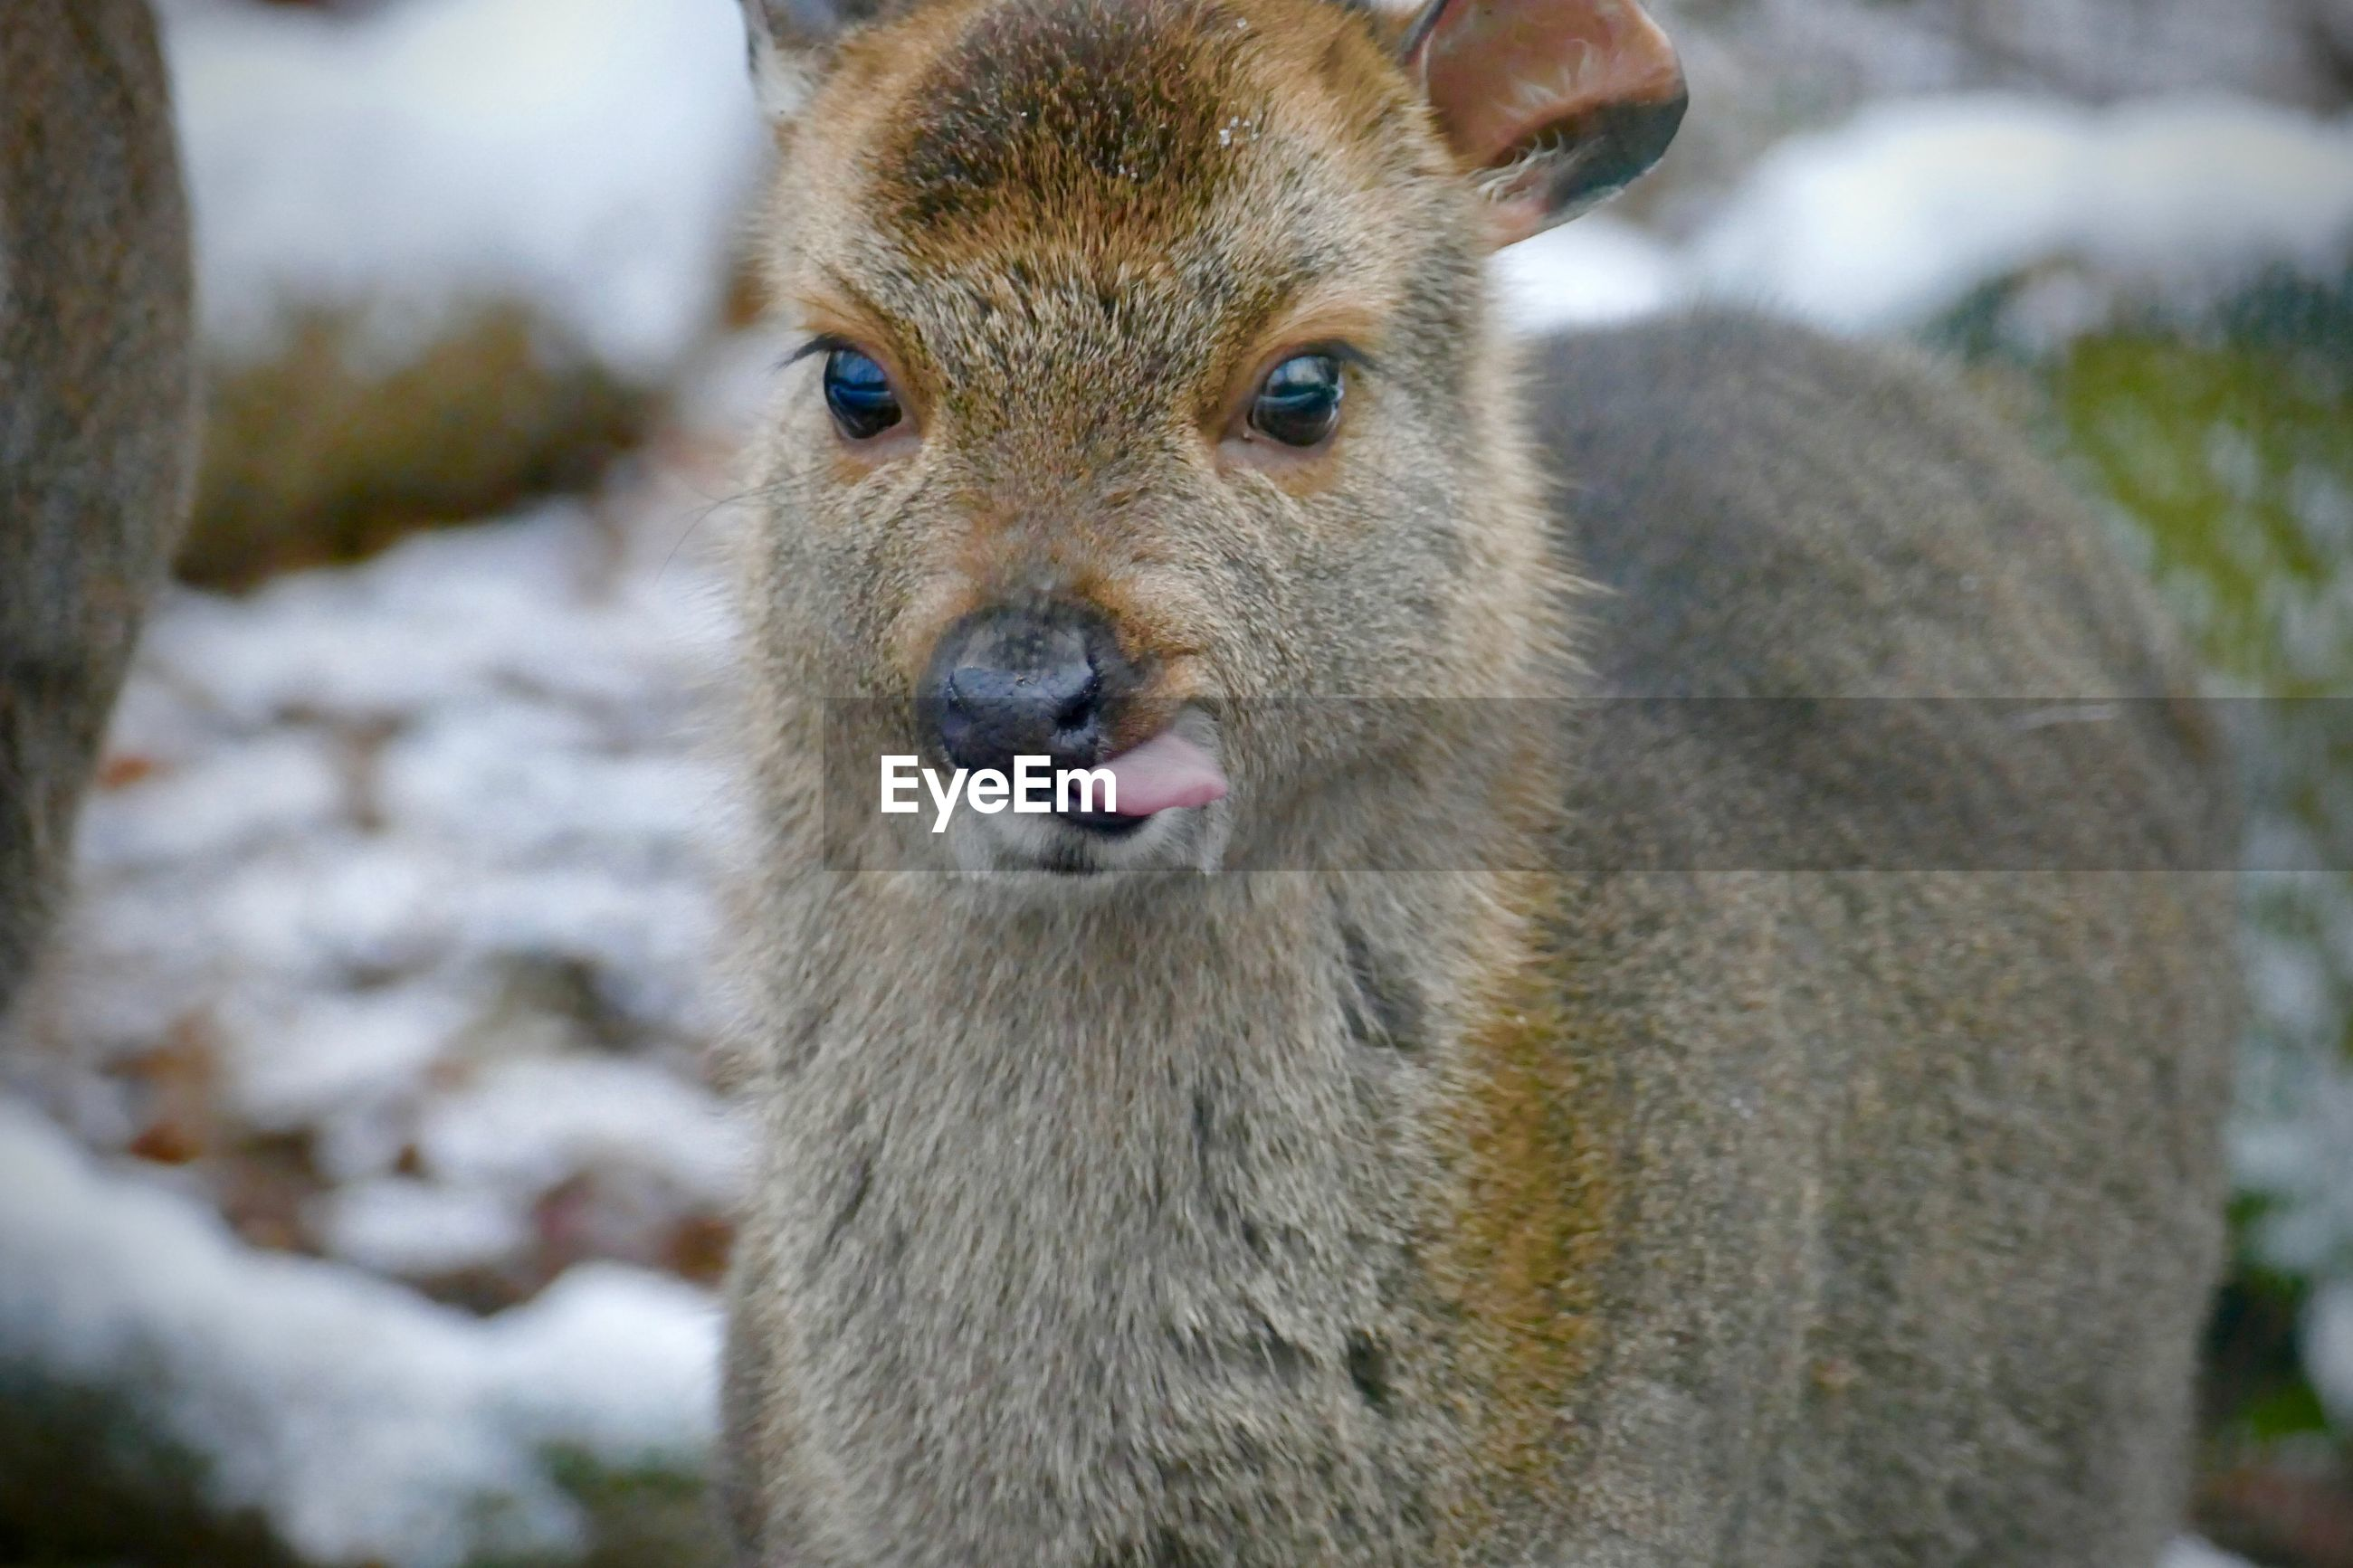 one animal, mammal, vertebrate, portrait, animal wildlife, animals in the wild, looking at camera, focus on foreground, close-up, day, no people, domestic animals, outdoors, field, nature, animal body part, land, snout, herbivorous, whisker